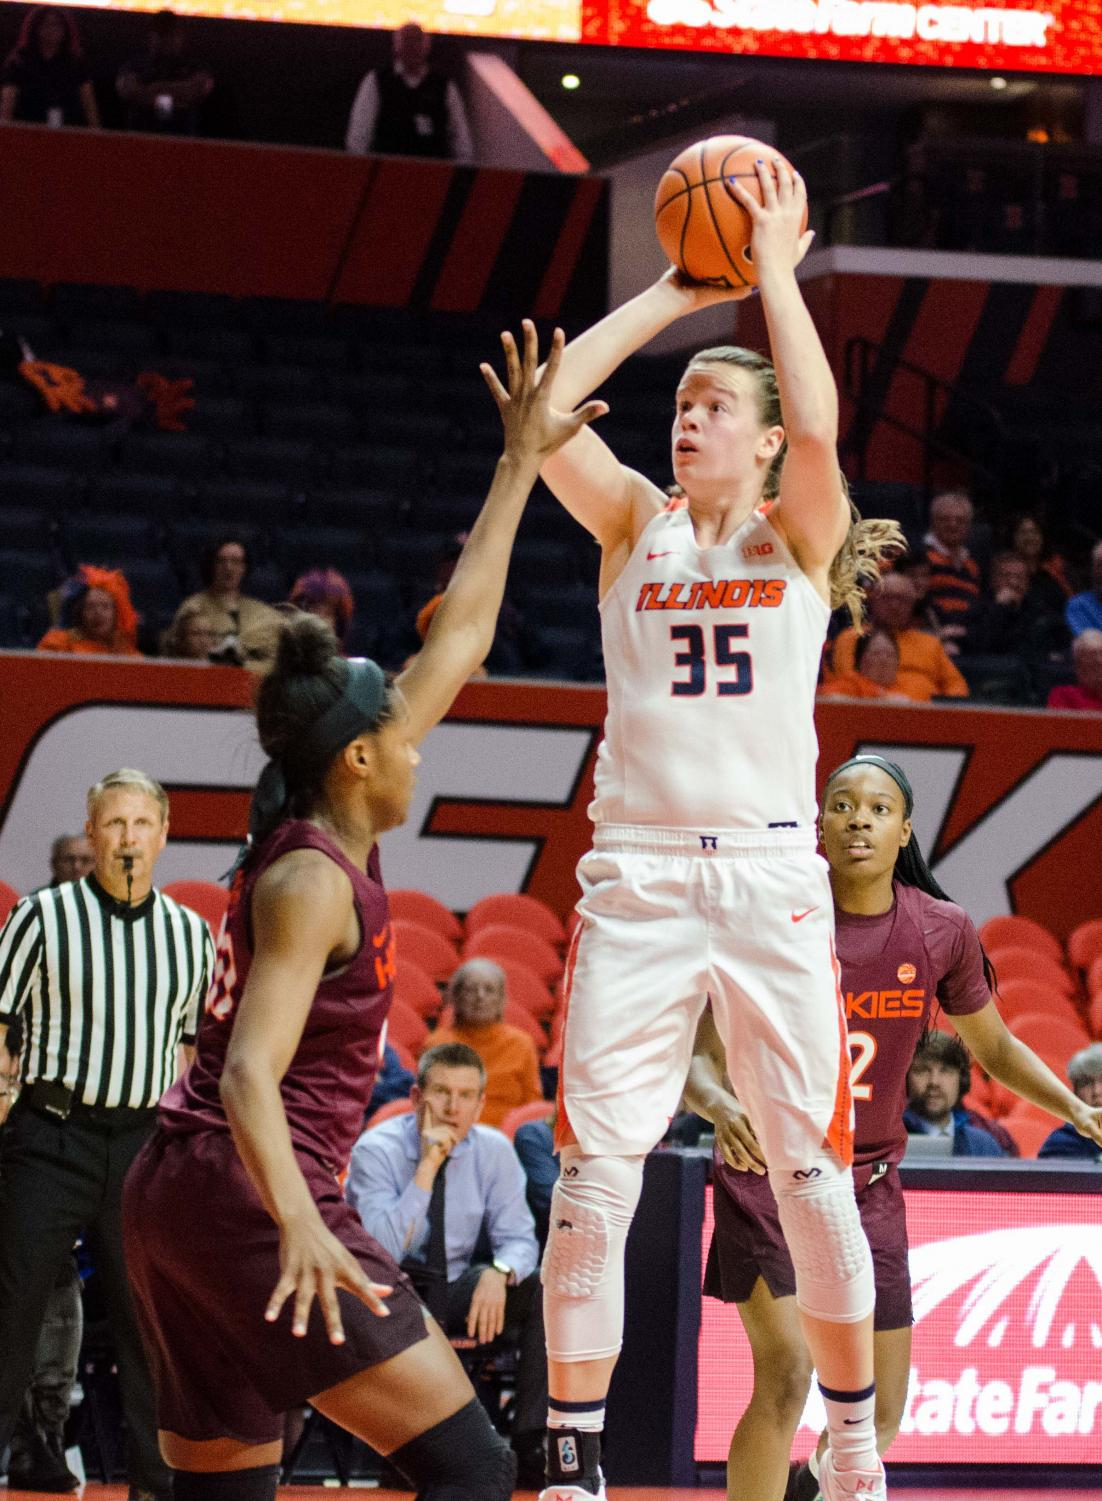 Senior forward Alex Wittinger shoots a jumper in Illinois' game against Virginia Tech on Nov. 30, 2017. The Illini lost 49-96.